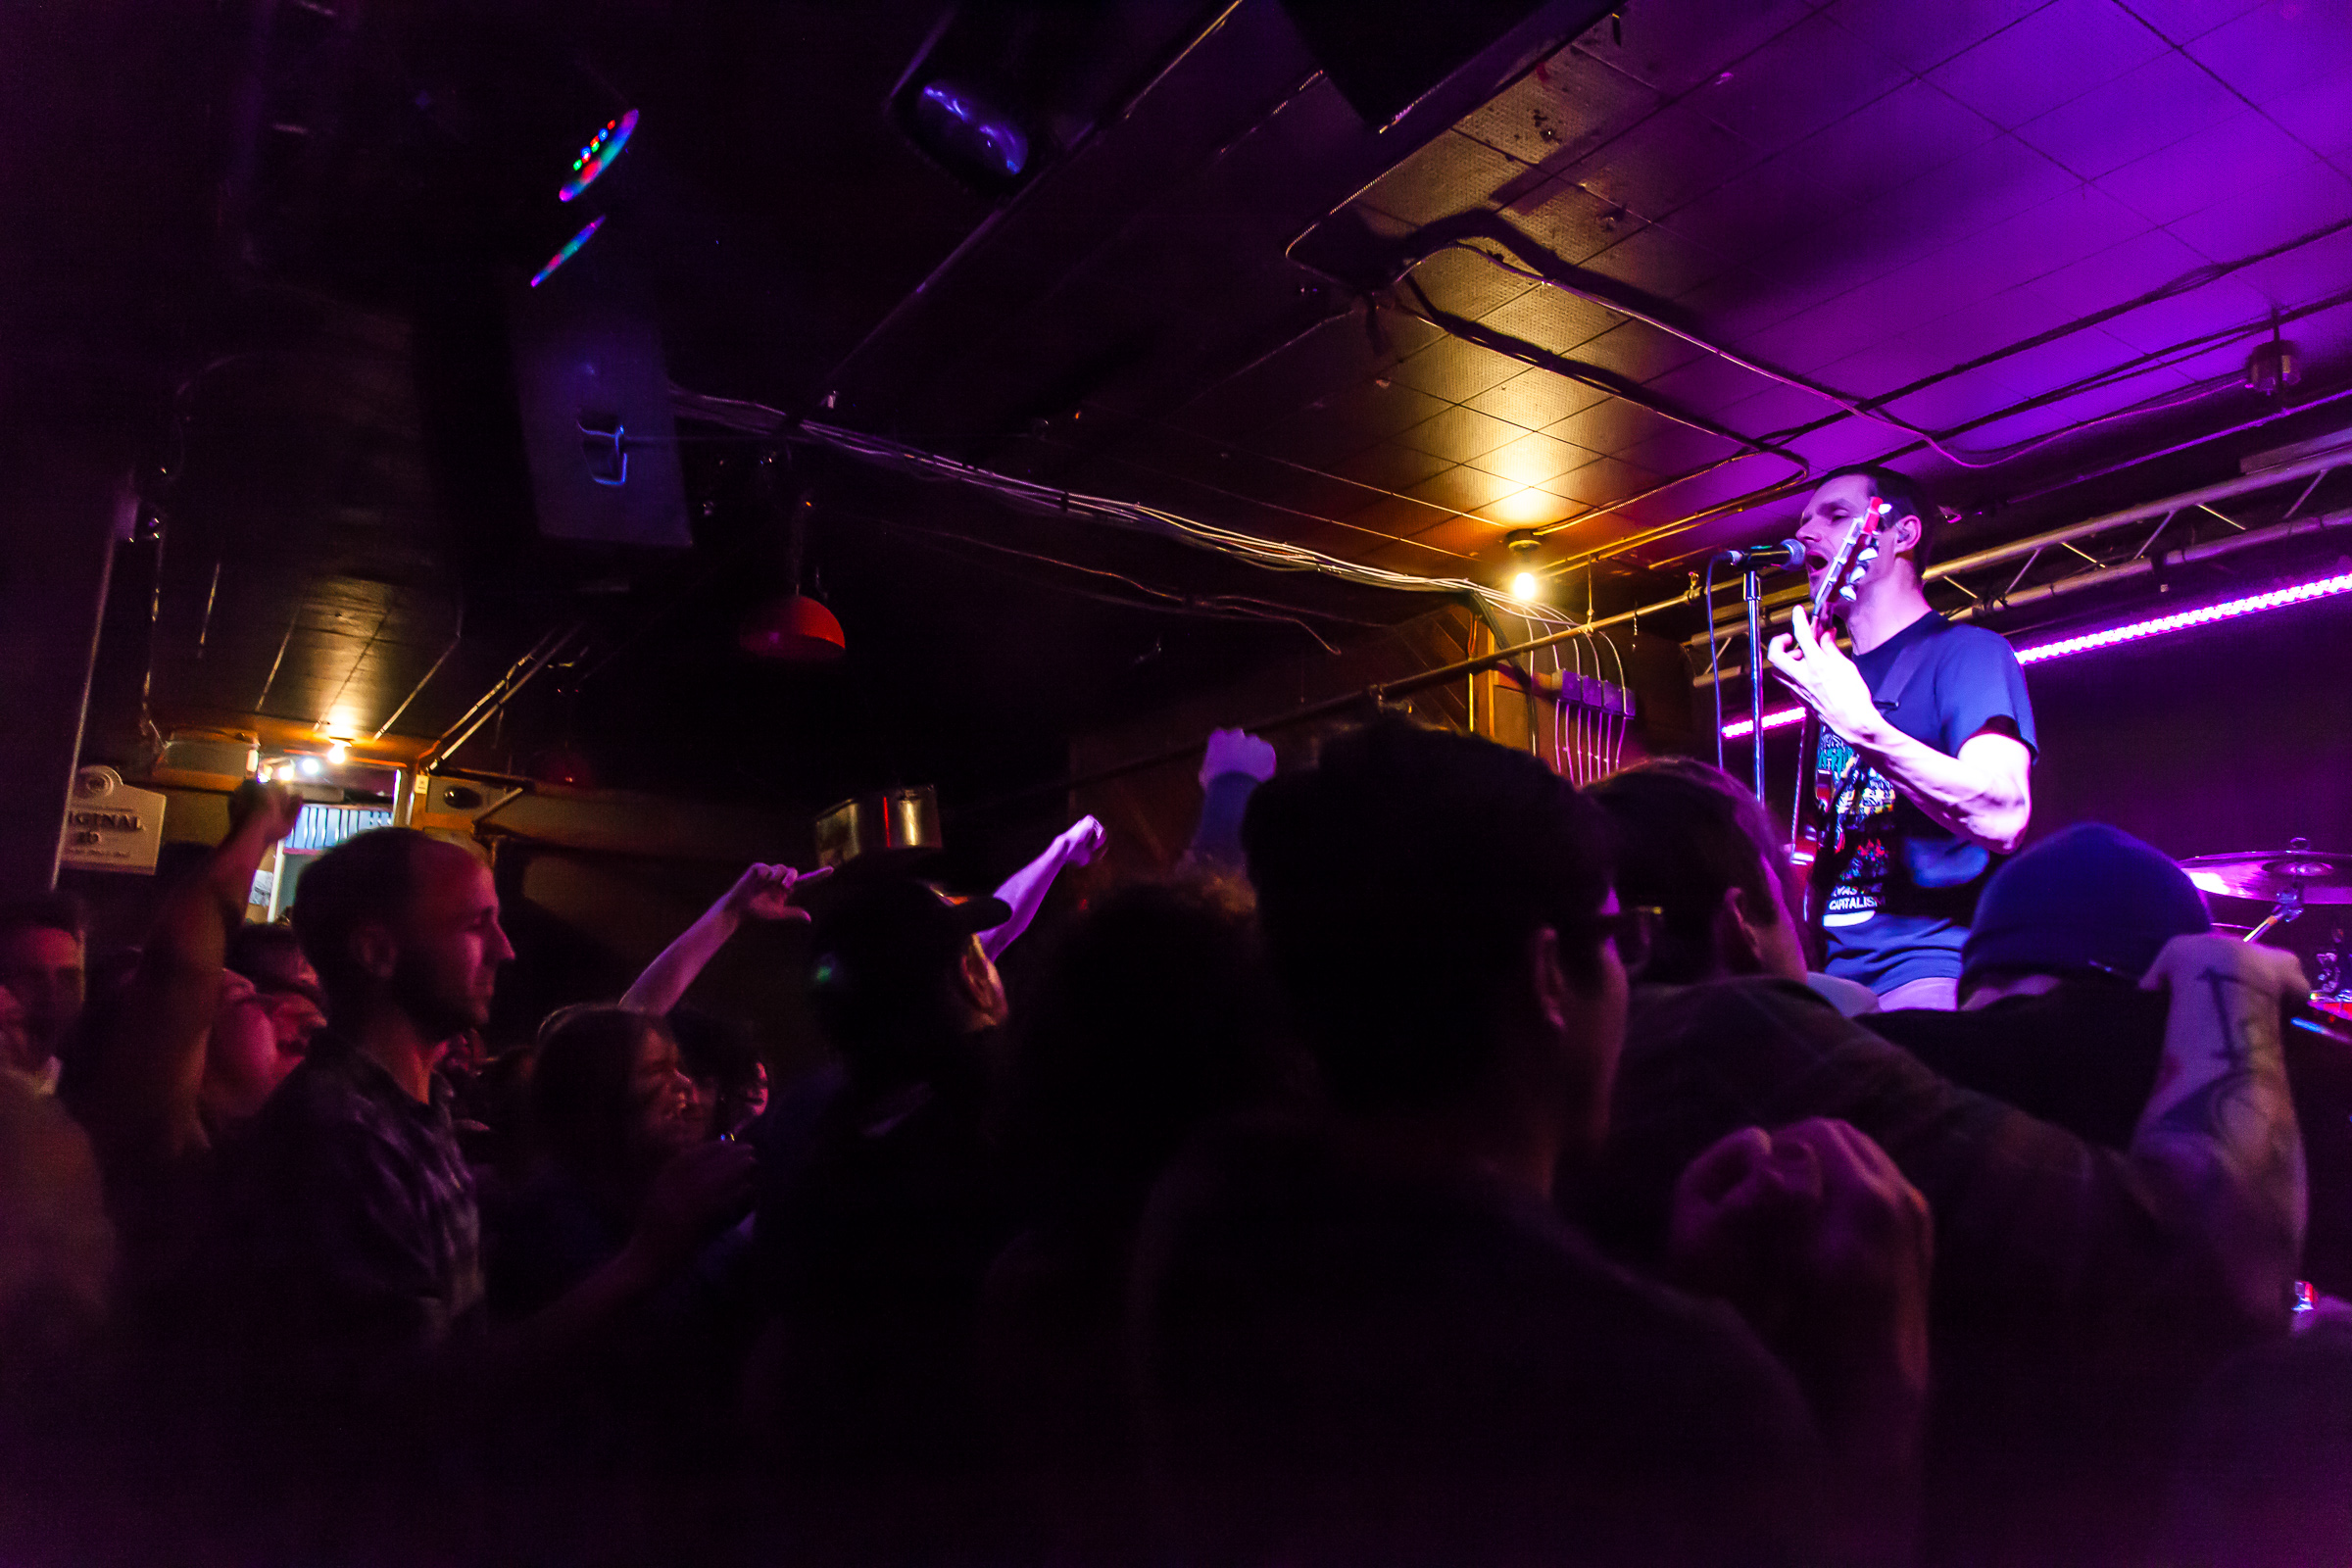 Propagandhi and the crowd at the Windsor